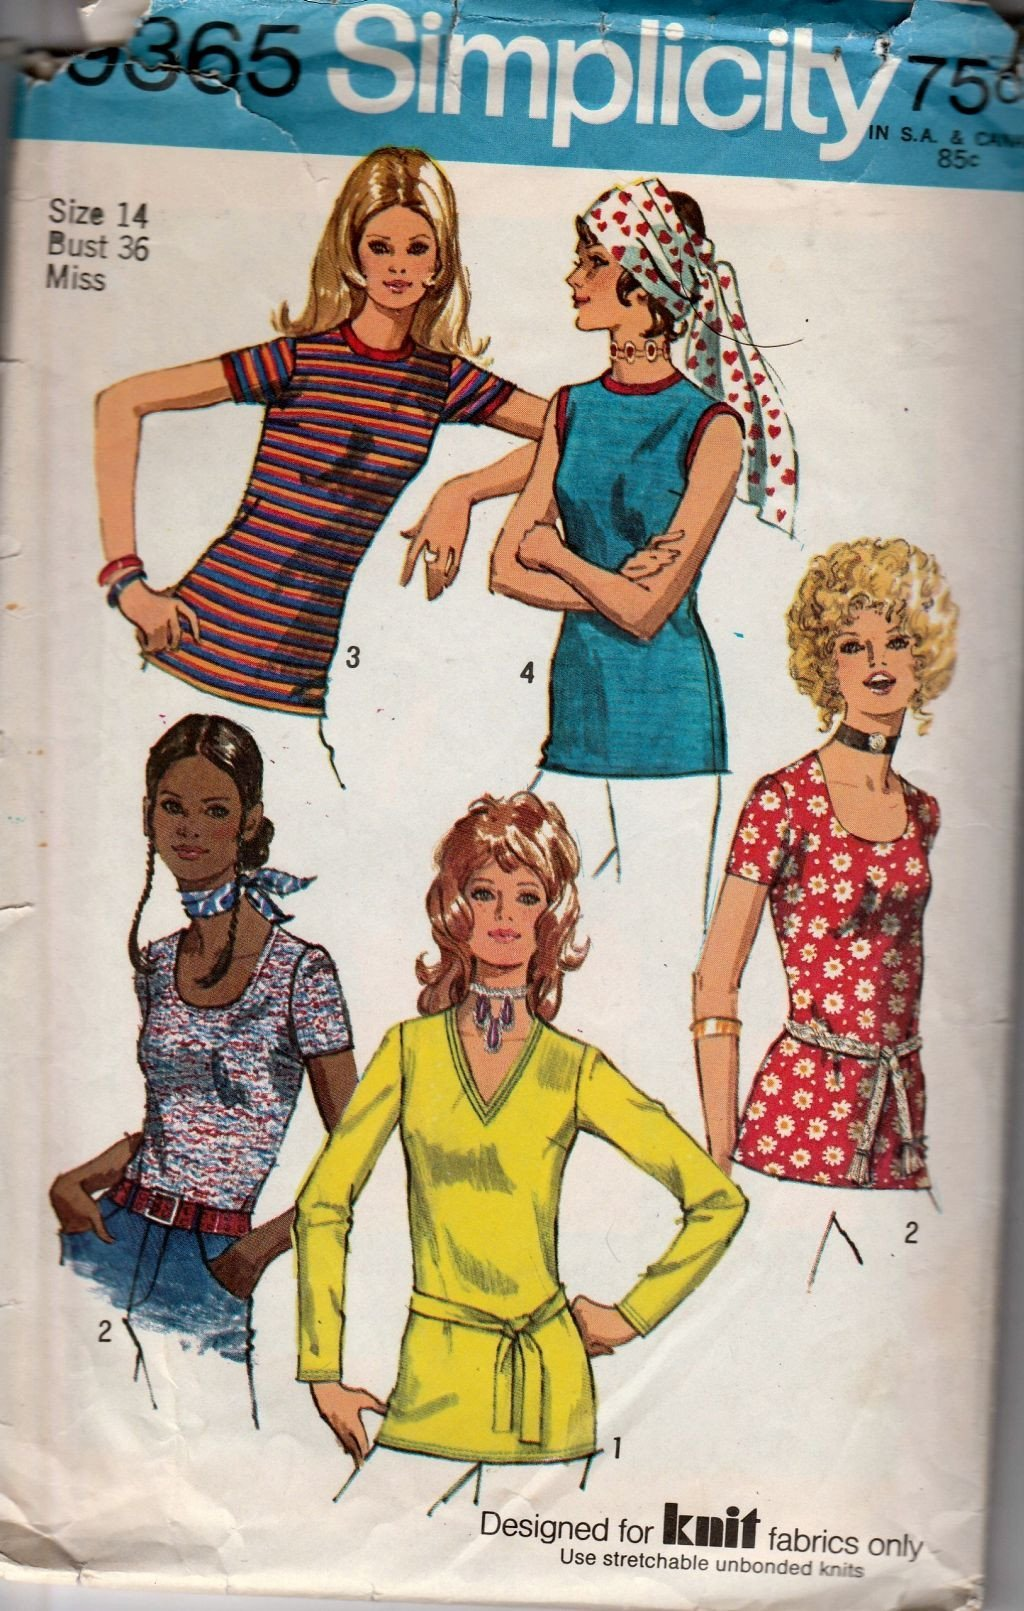 Simplicity 9365 Vintage 1970's Pattern Ladies Set of Blouses Back Zipper - VintageStitching - Vintage Sewing Patterns